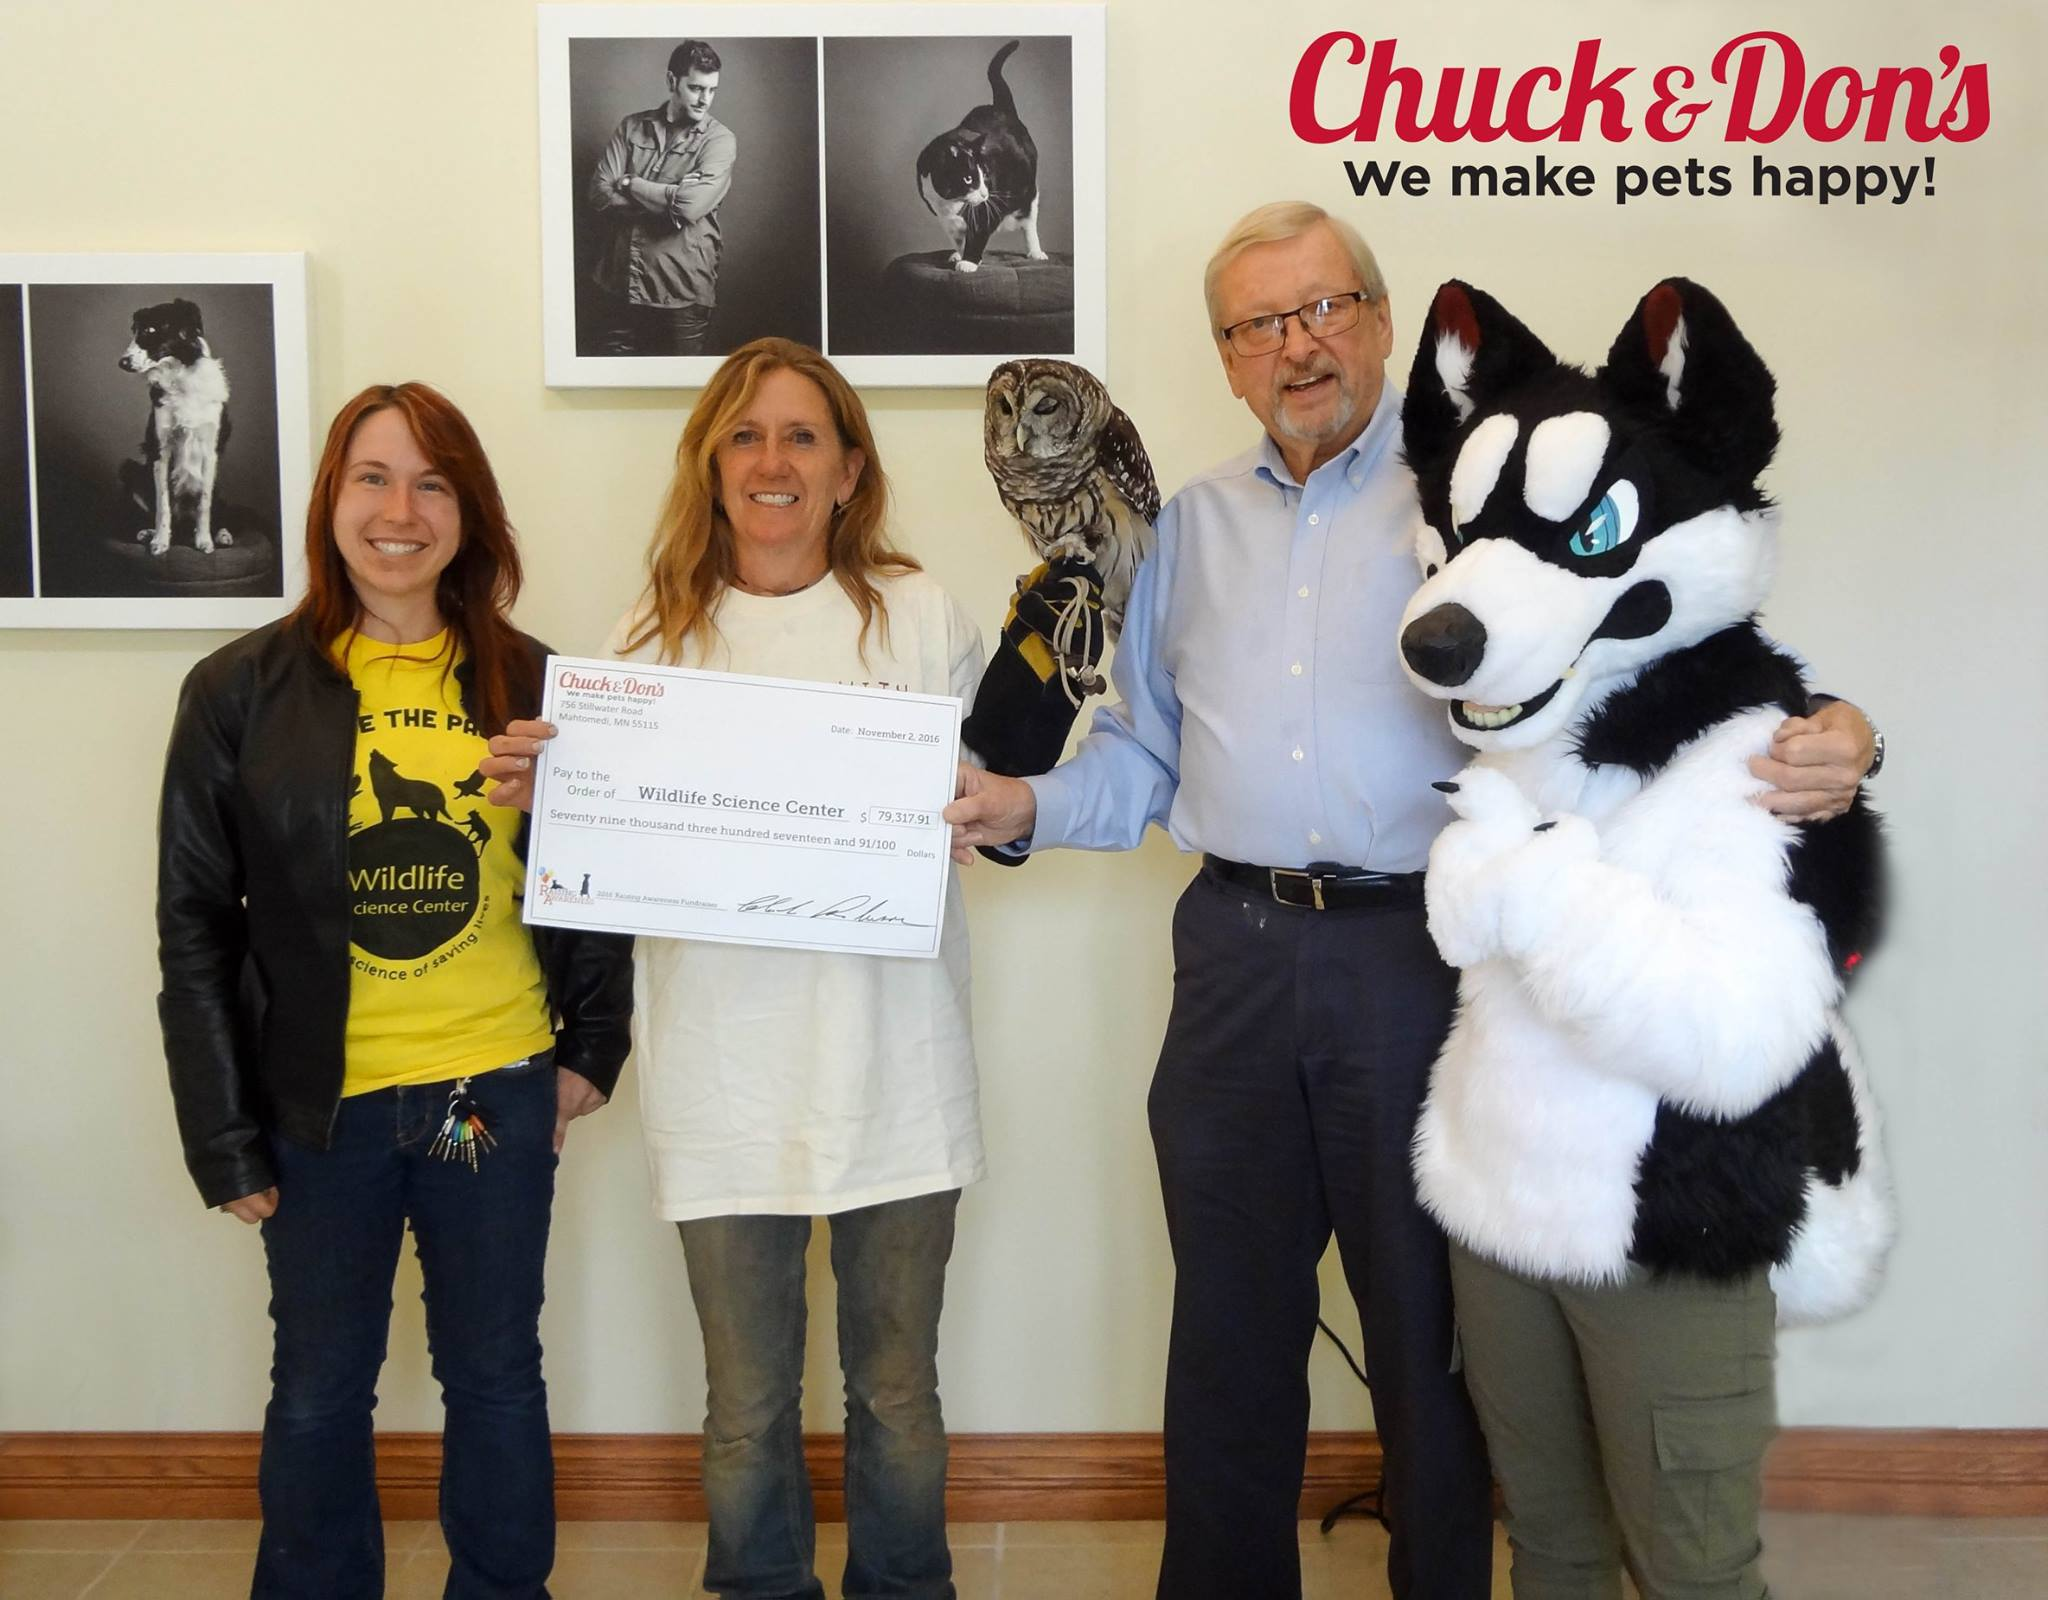 """WSC was honored to receive a donation of nearly $80,000 from Chuck and Don's as part of their """"Raising Awareness"""" campaign!"""